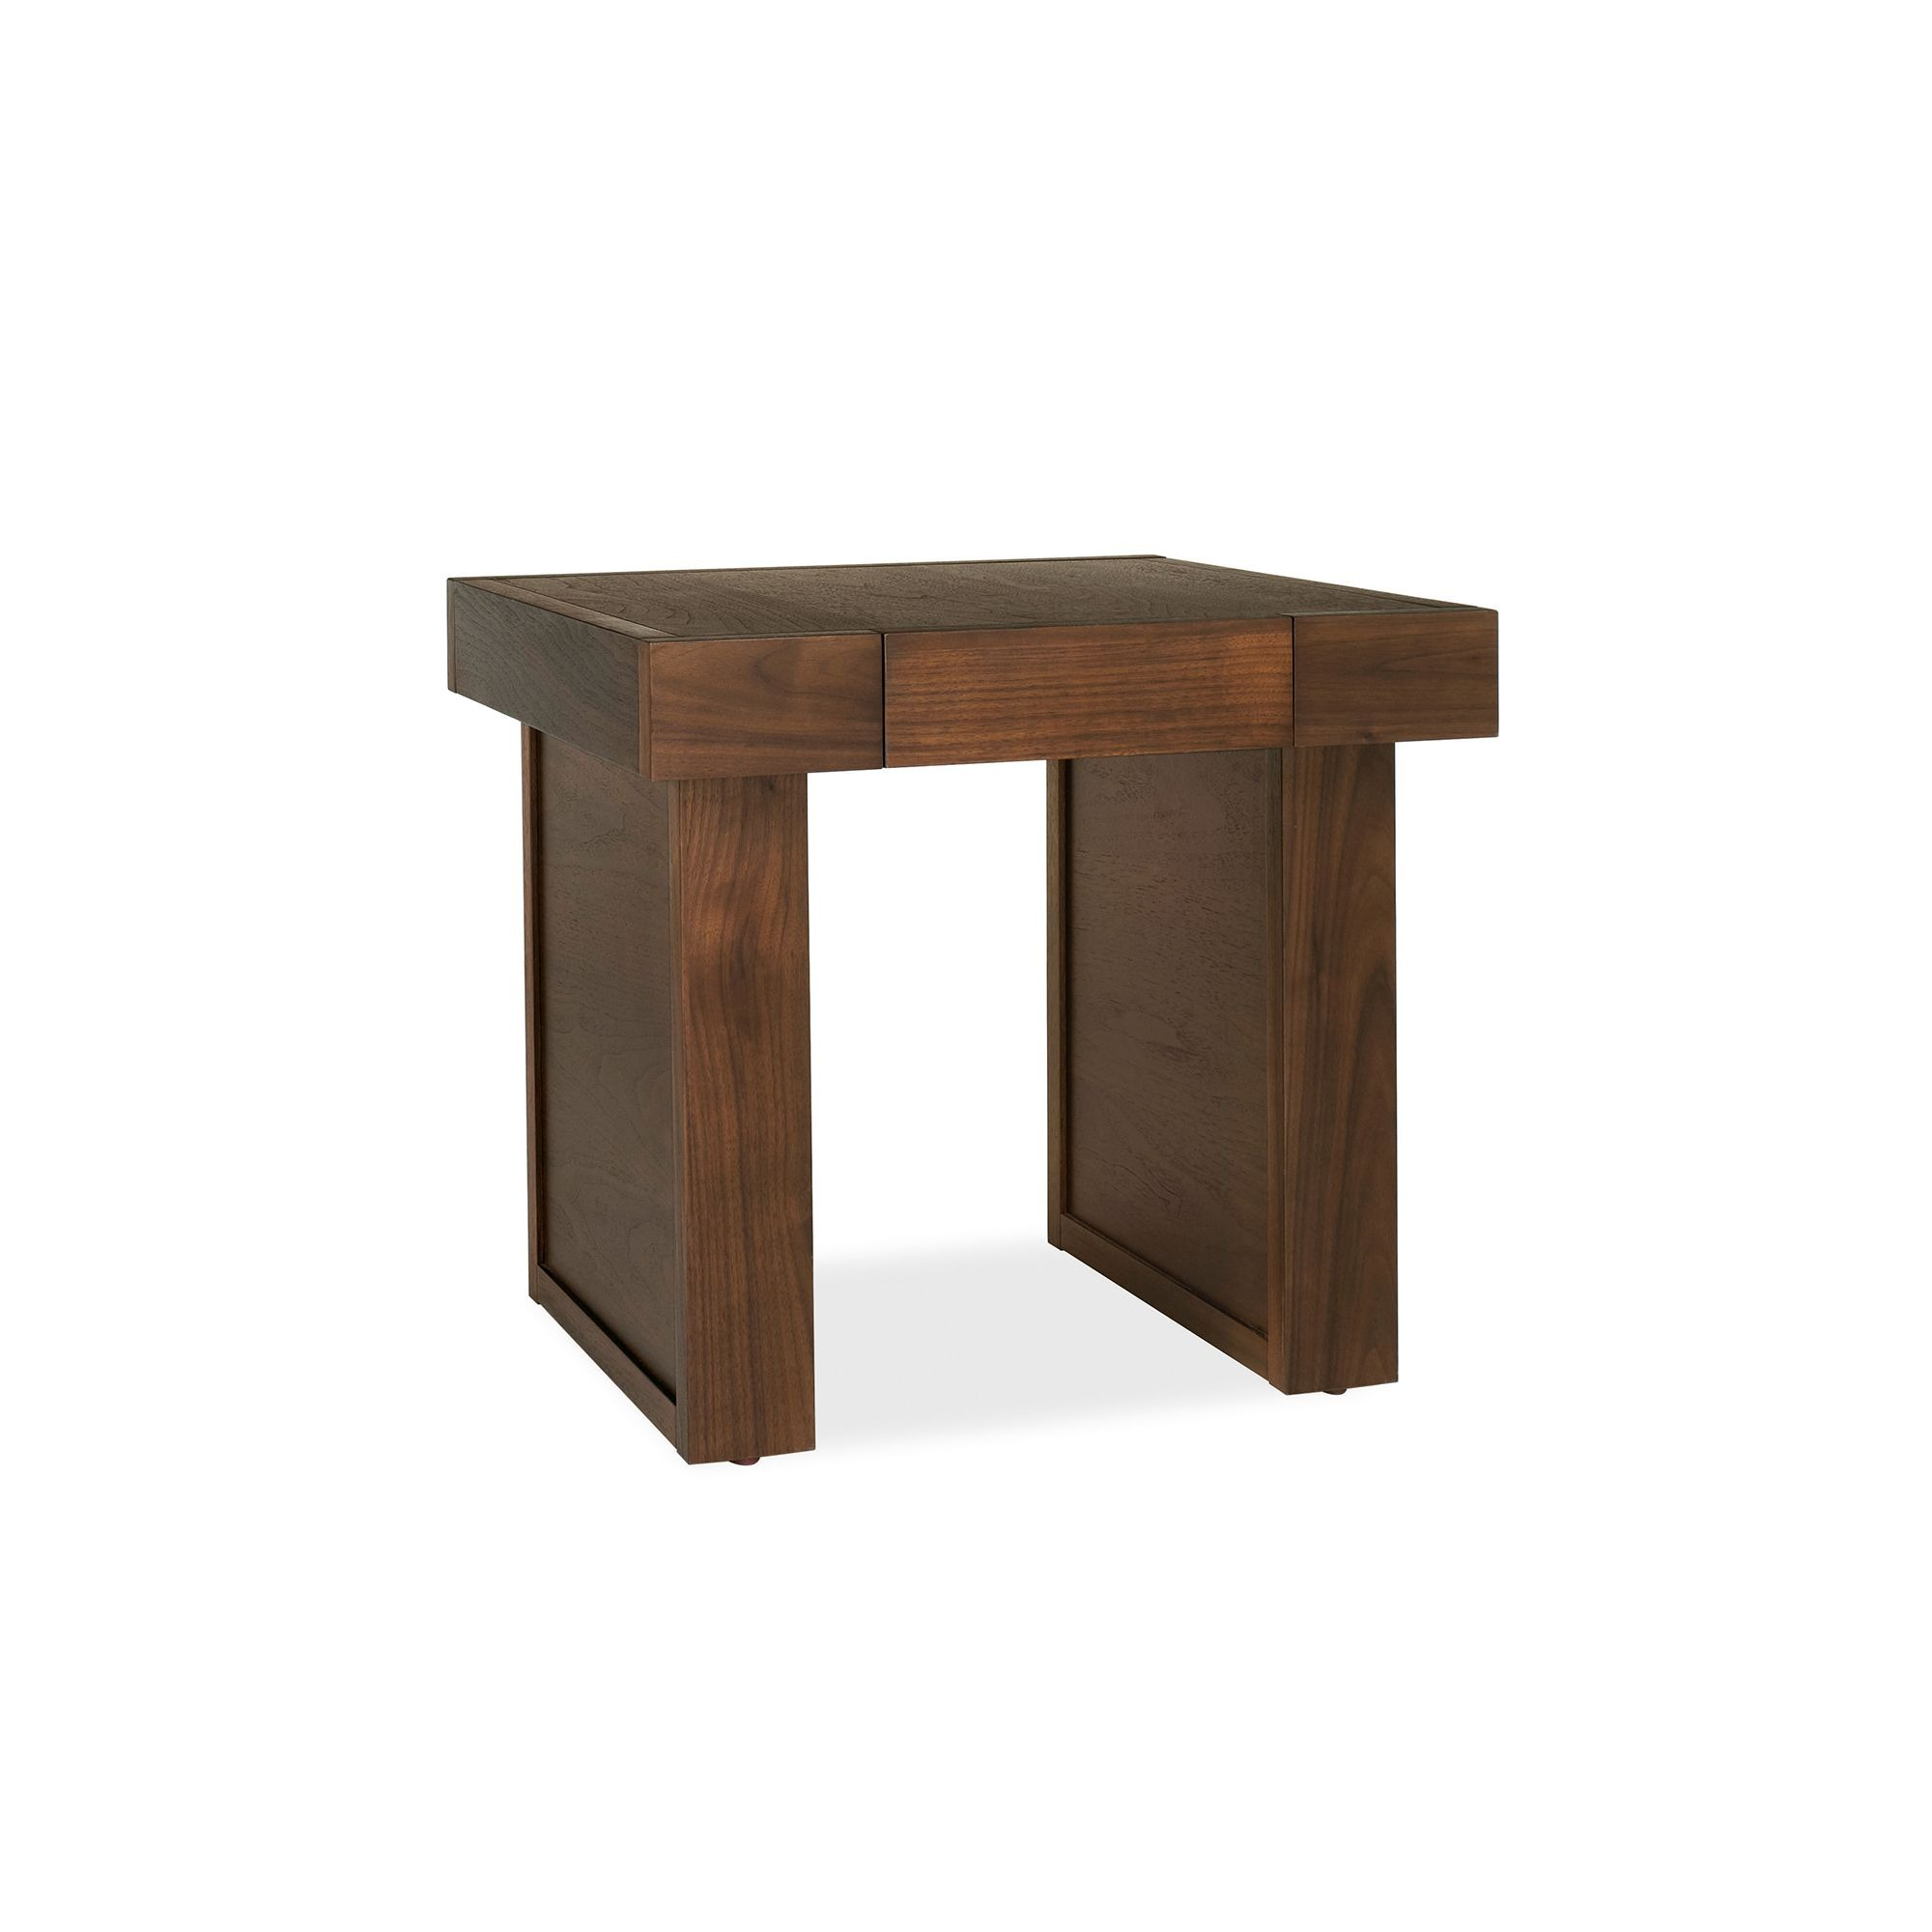 AFRIKA LAMP TABLE